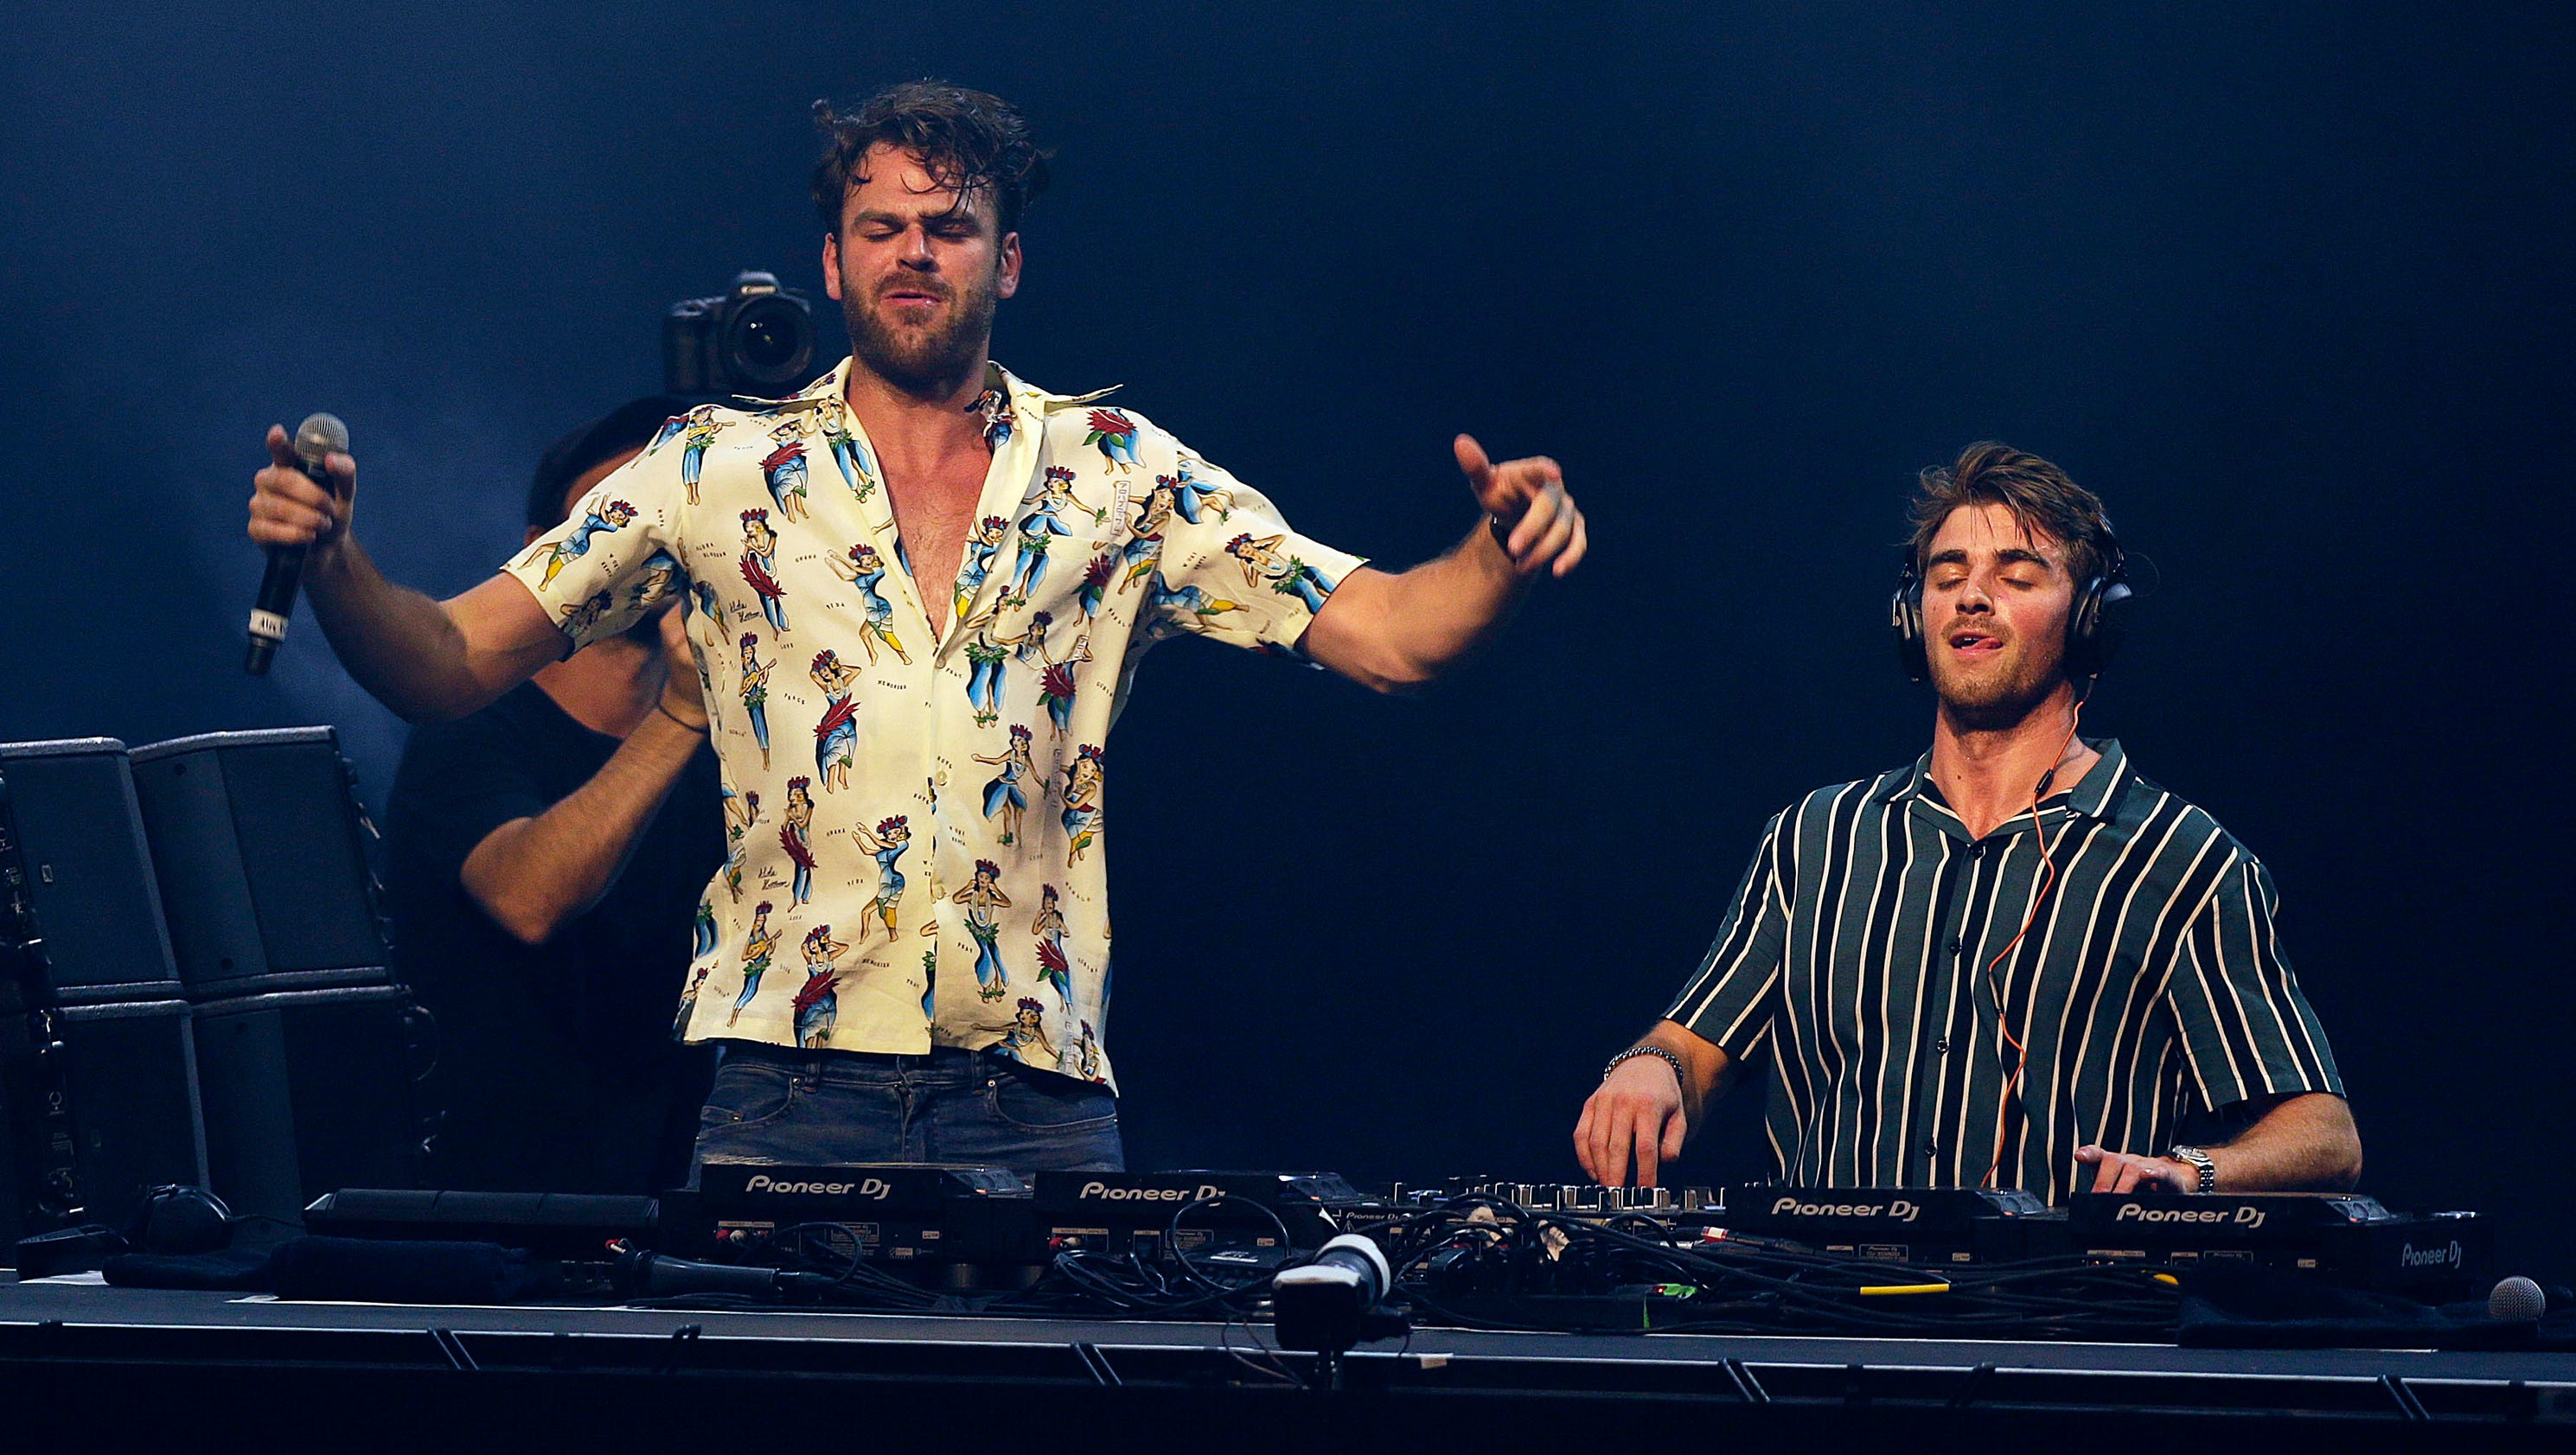 The Chainsmokers Theatrics Remain Predictable During